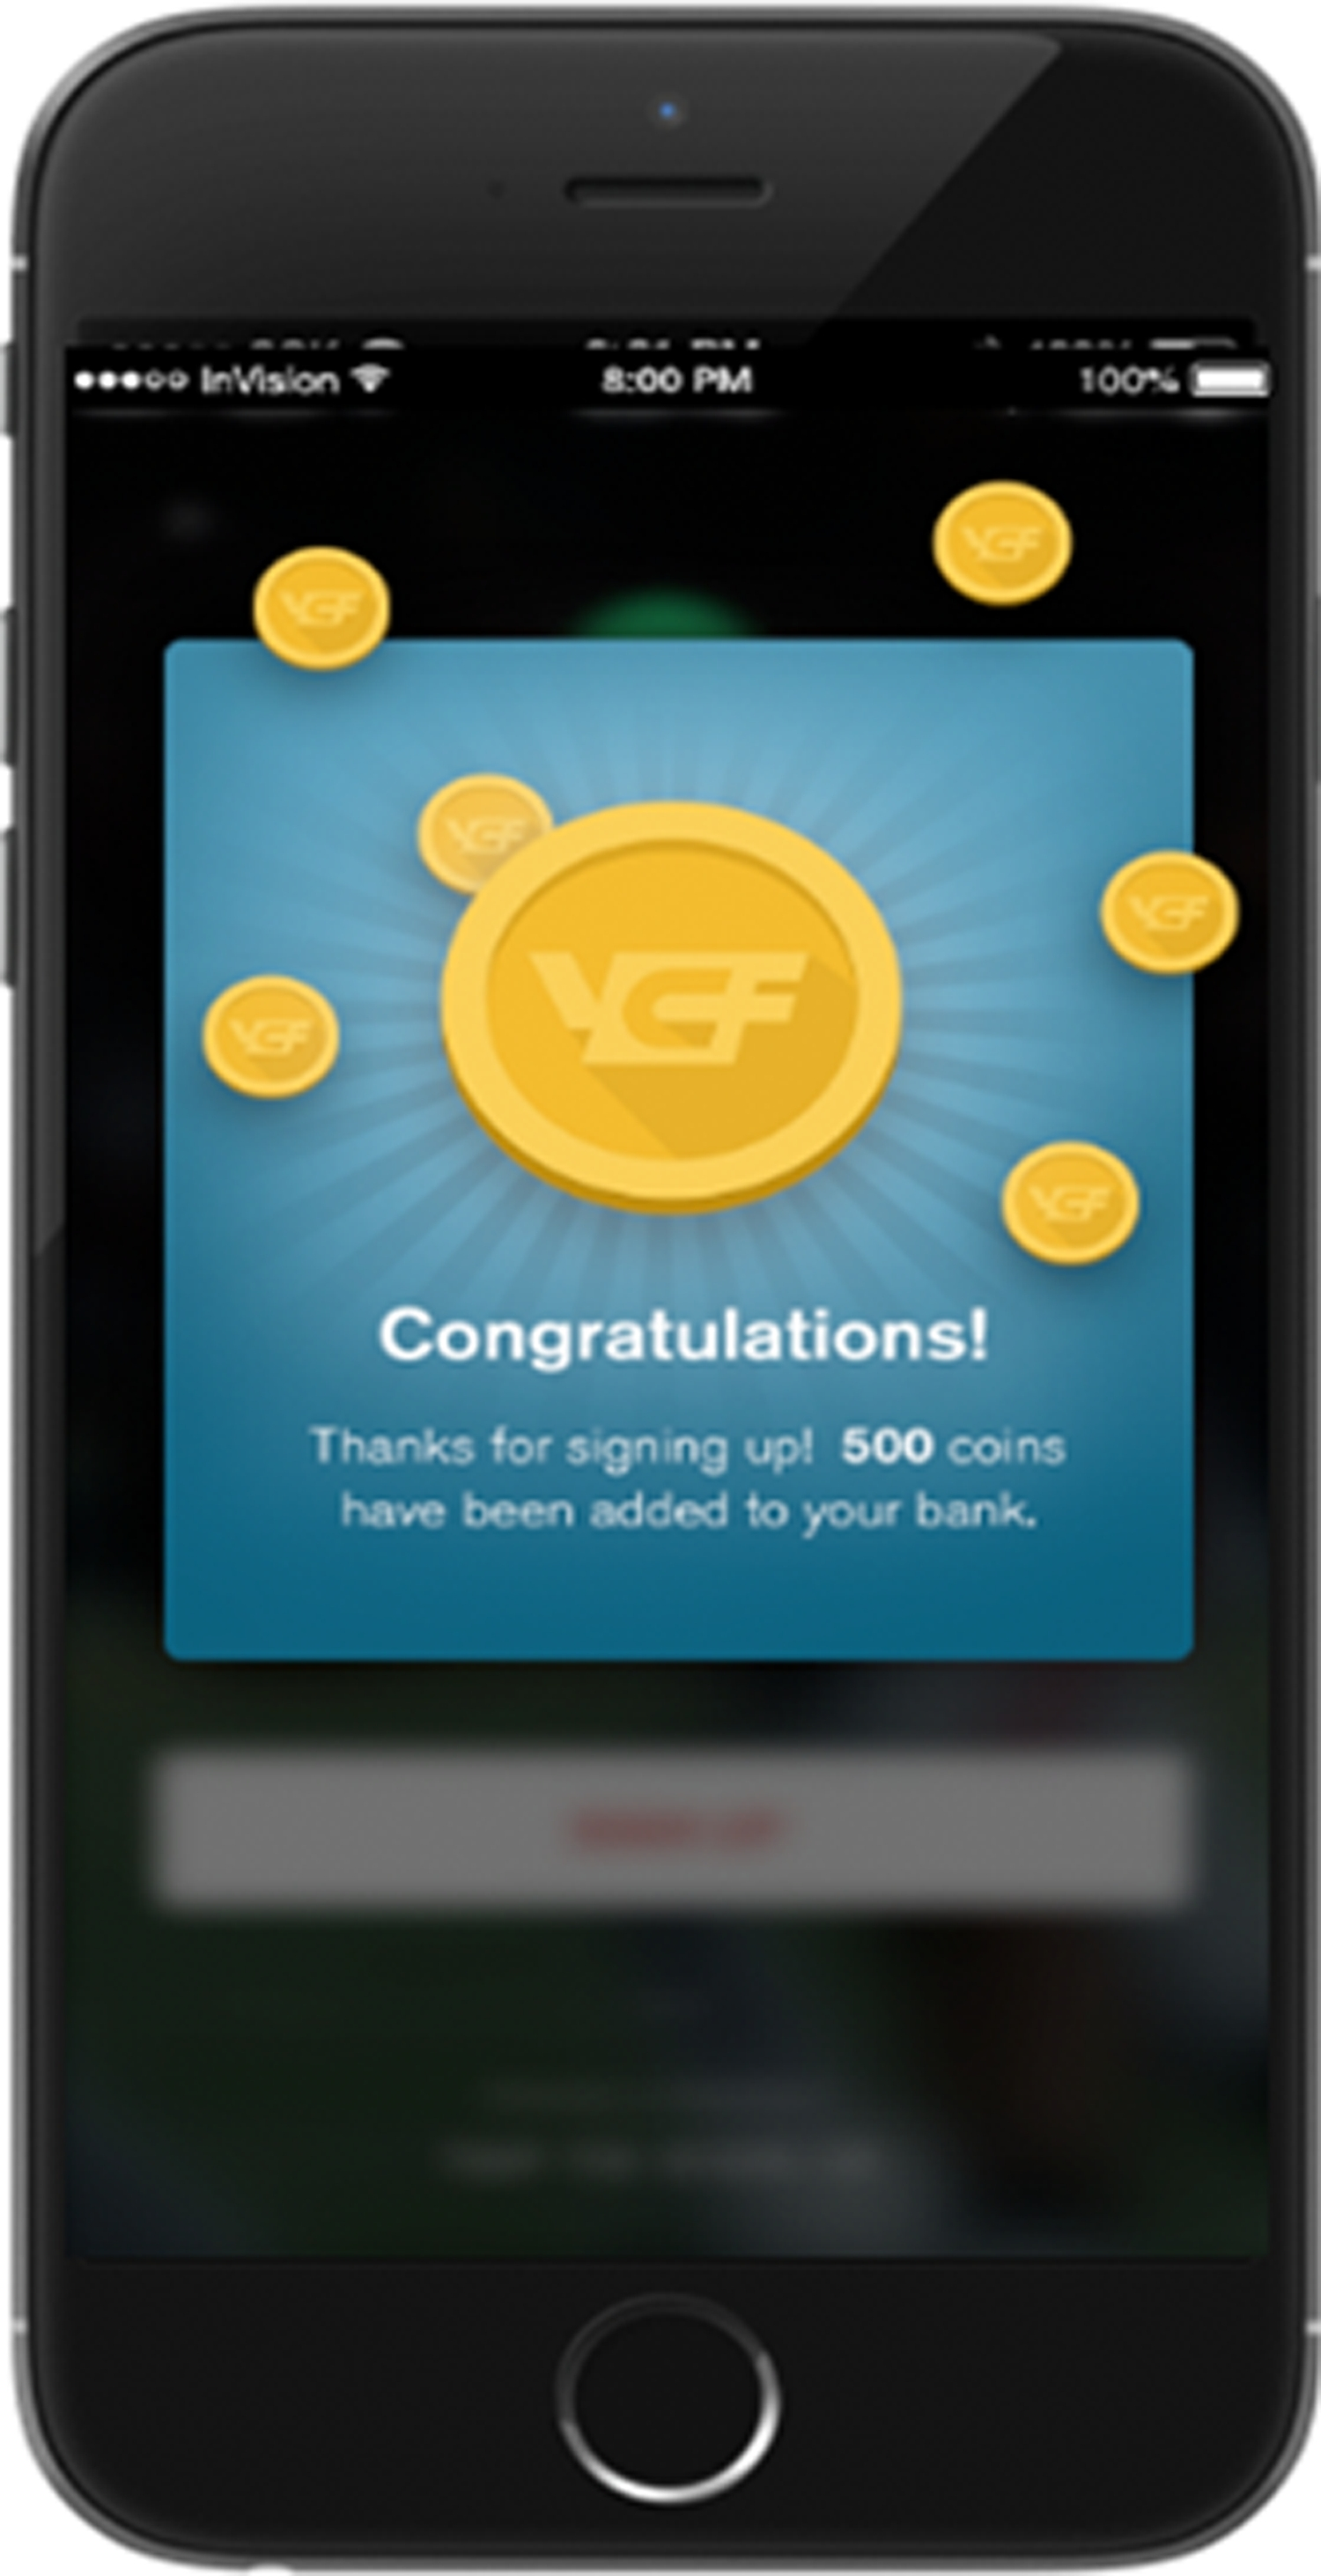 Within the YCF system, fans will be competing for YCF coins, cash prizes, merchandise and perks provided by YCF. (Photo: Business Wire)